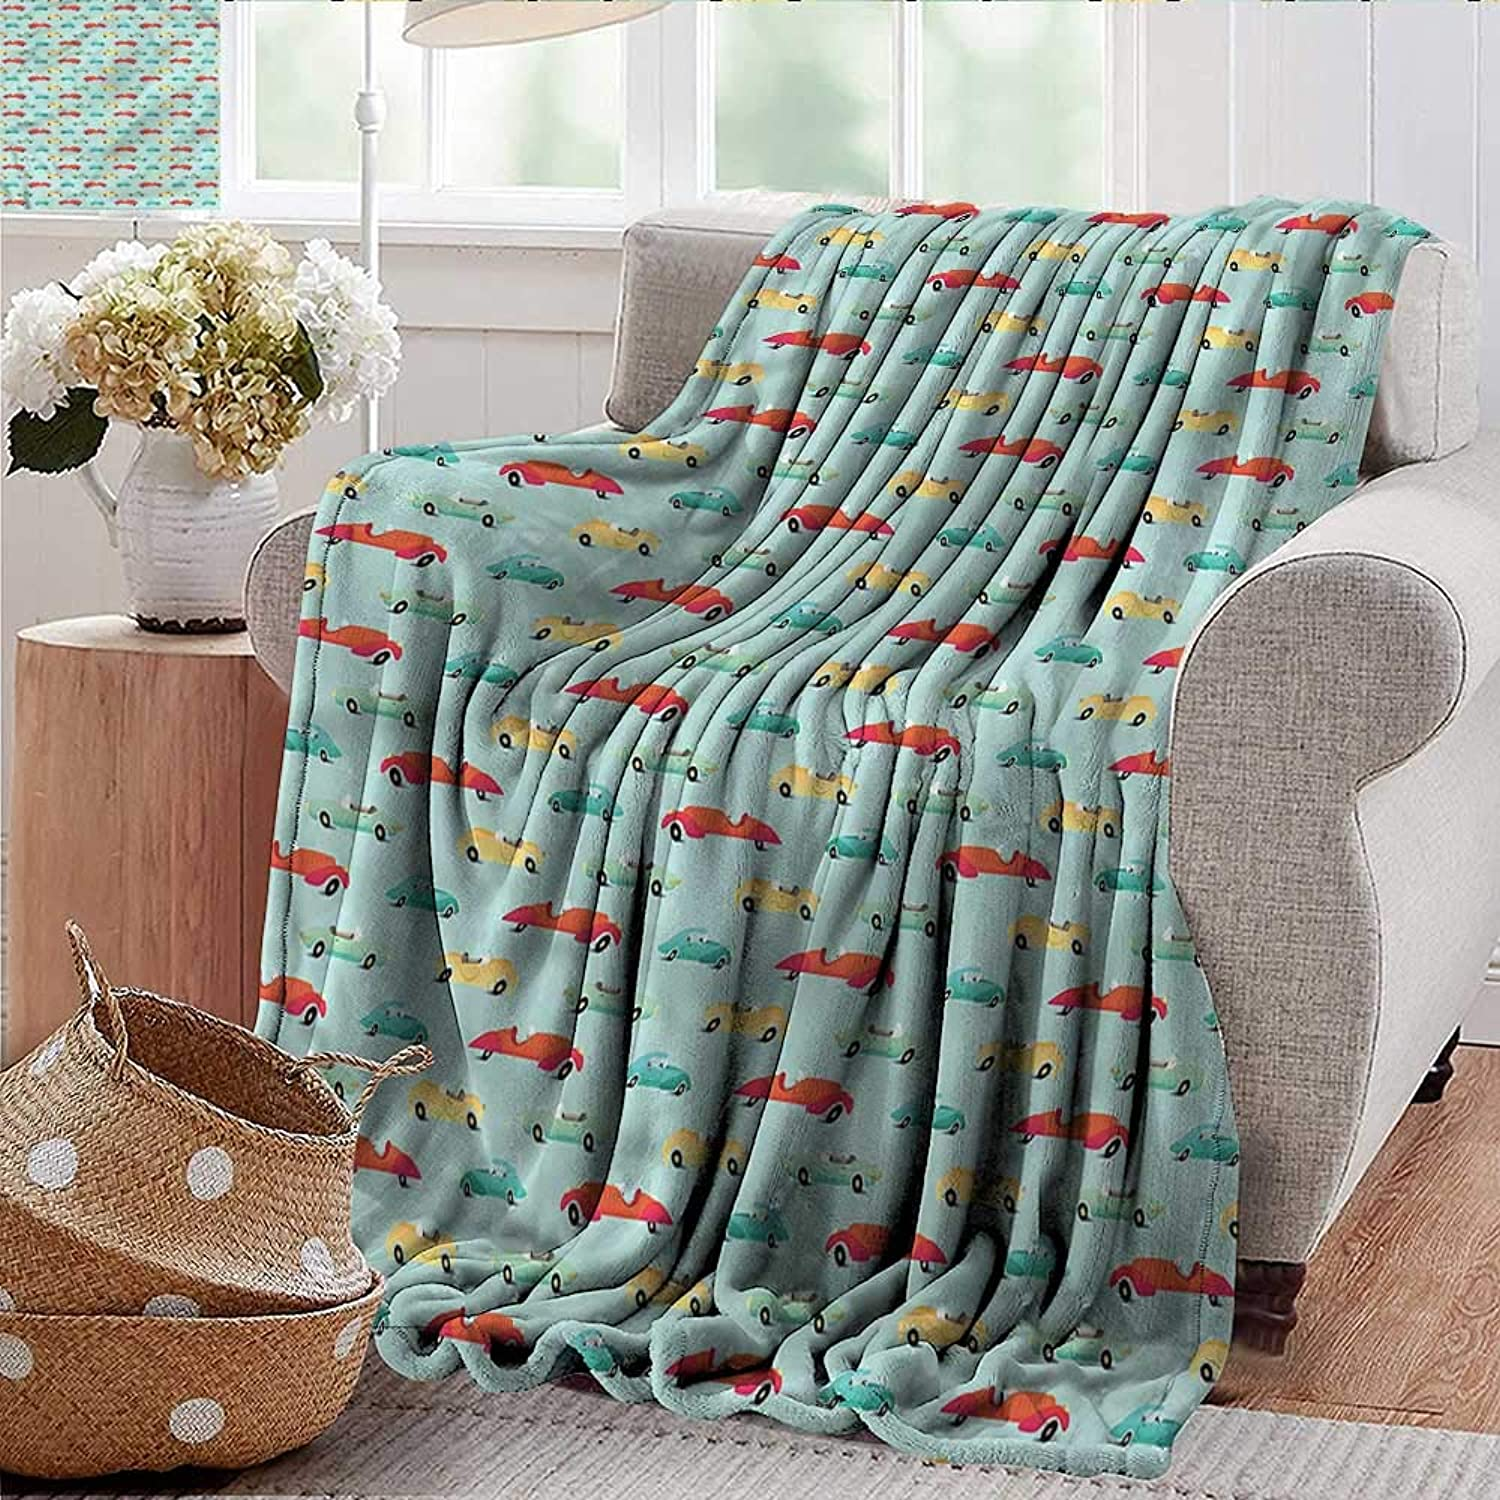 Xaviera Doherty Weighted Blanket for Kids Cars,Various Vintage Wheels Soft Summer Cooling Lightweight Bed Blanket 50 x60